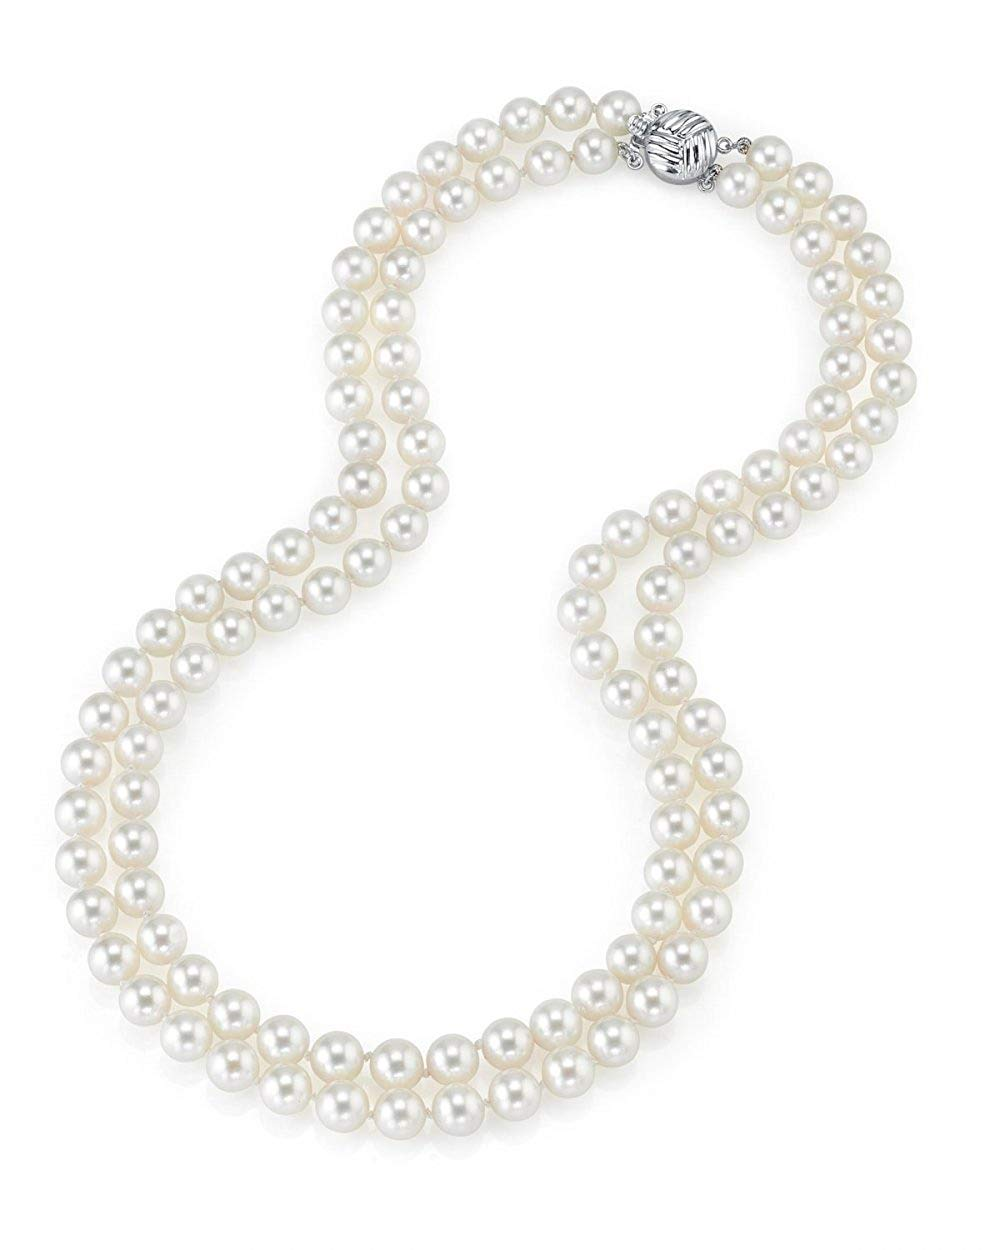 """THE PEARL SOURCE 14K Gold 7-8mm AAAA Quality Double Strand White Freshwater Cultured Pearl Necklace for Women in 17-18"""" Princess Length"""